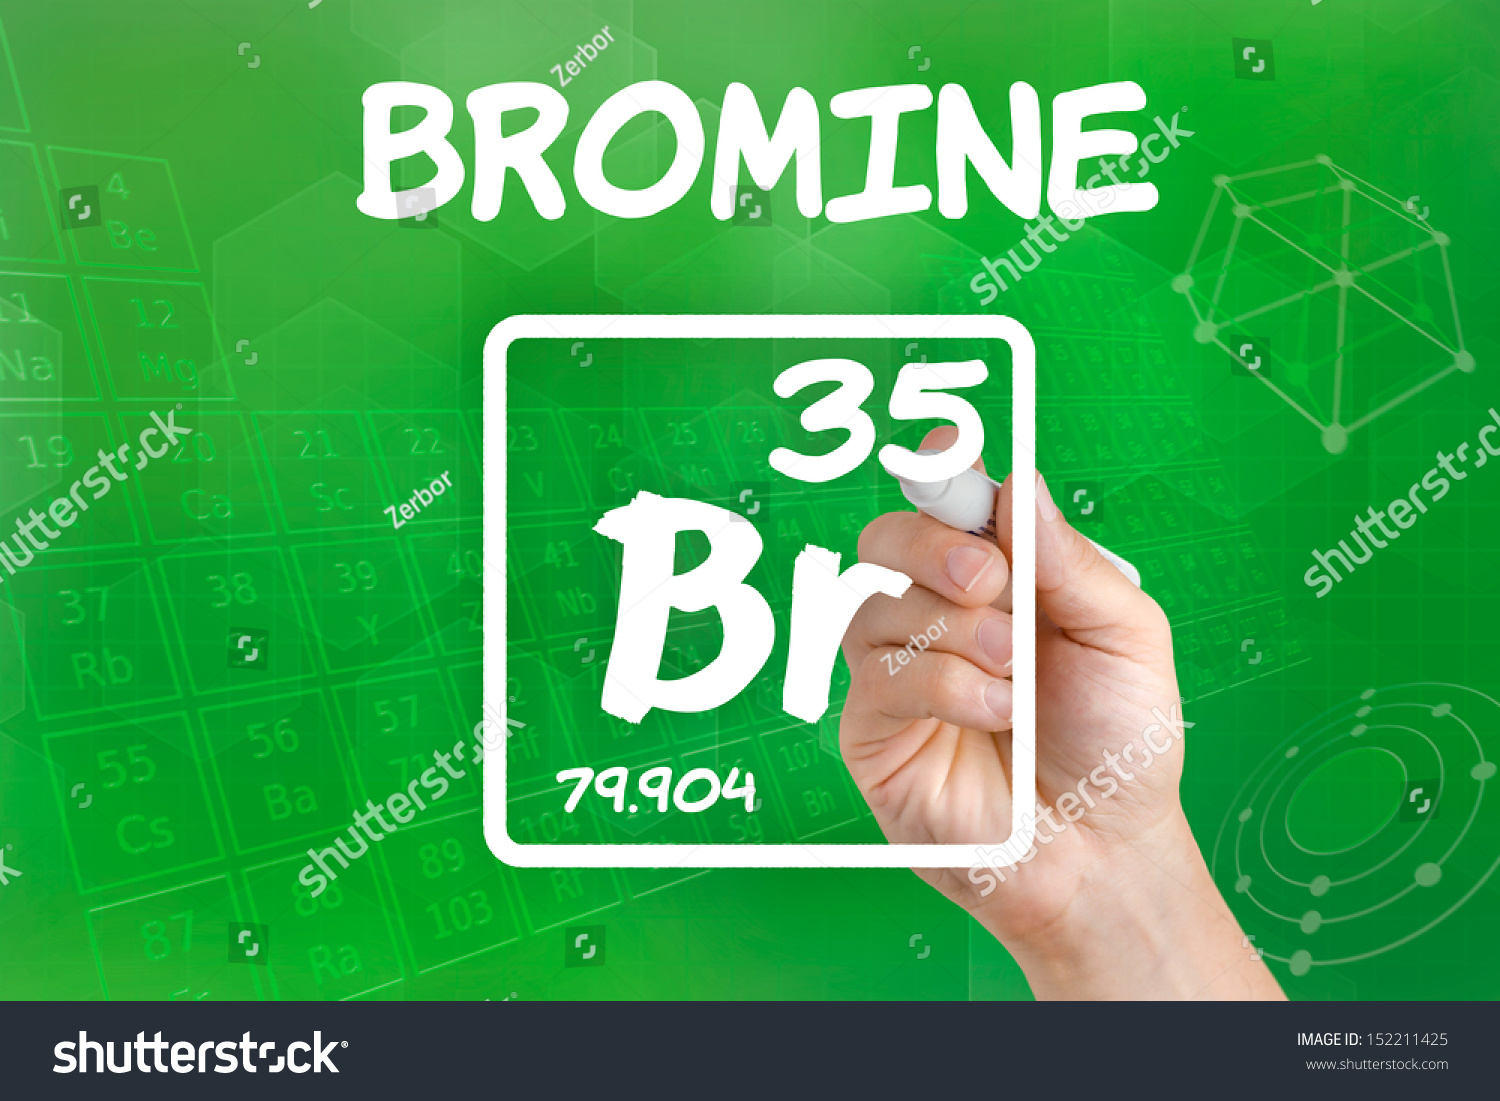 Symbol chemical element bromine stock photo 152211425 shutterstock symbol for the chemical element bromine biocorpaavc